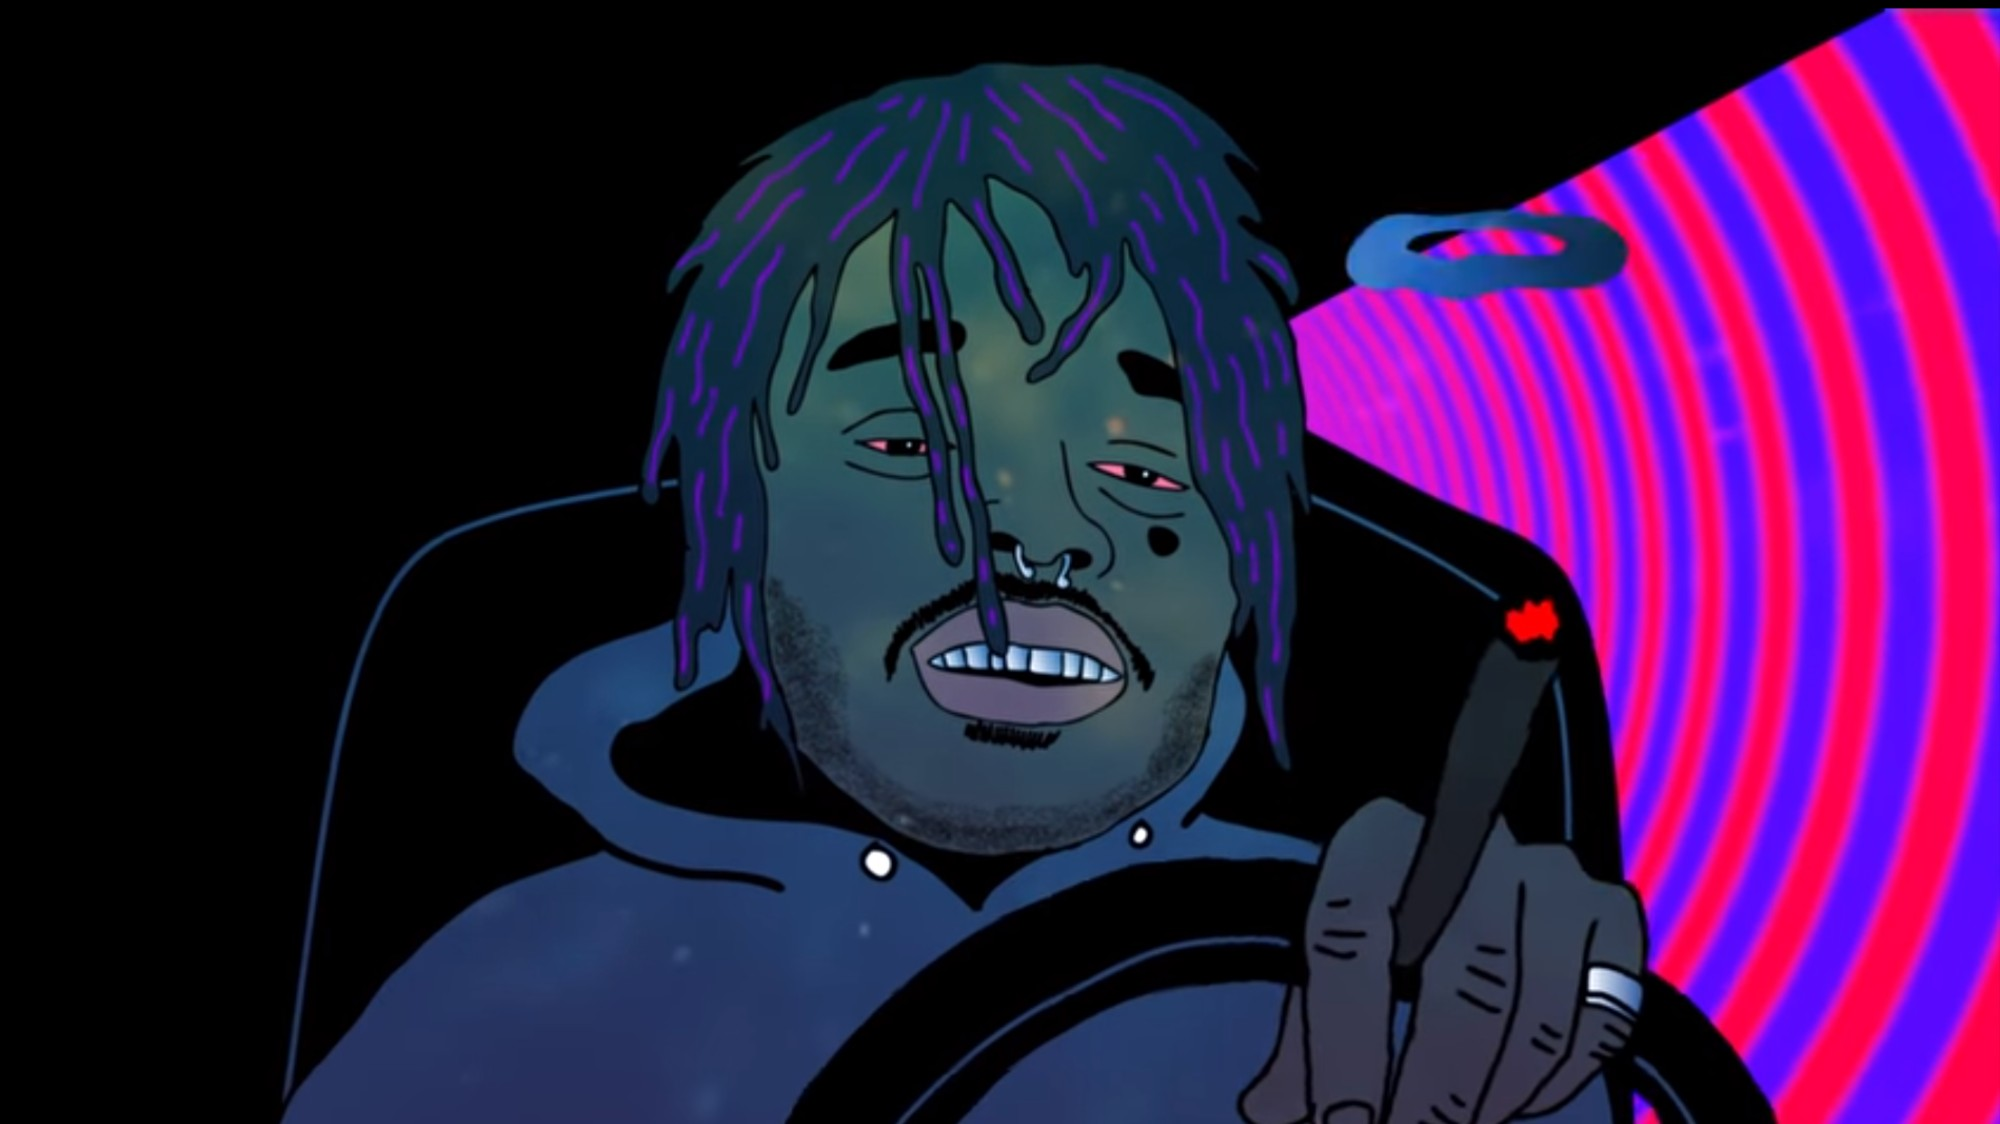 """We Asked Emo Bands to Review Lil Uzi Vert's """"XO Tour Llif3"""